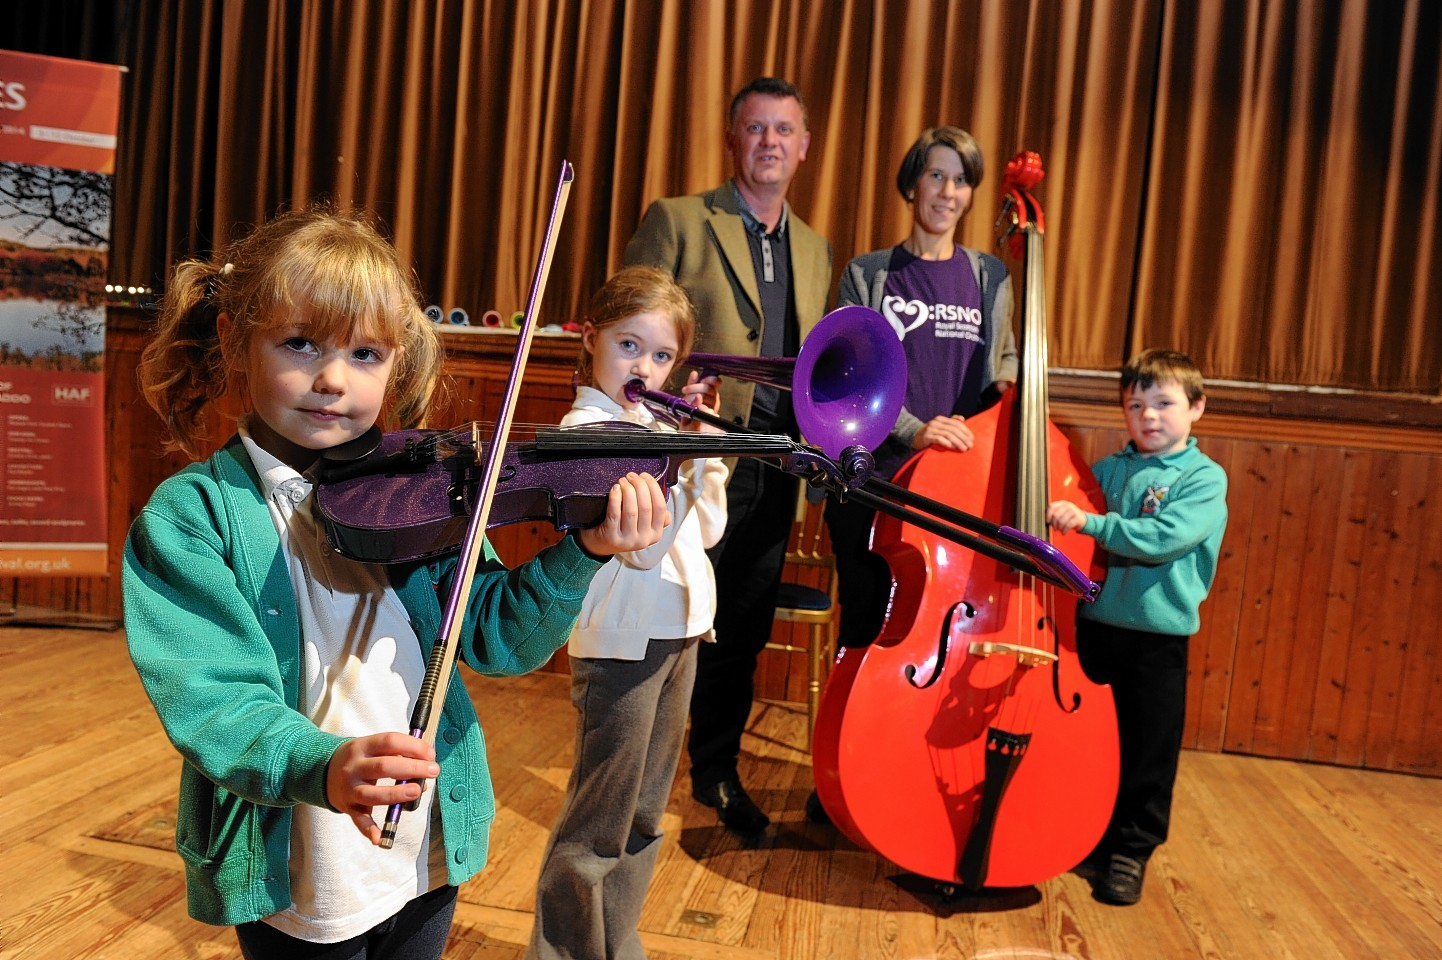 Royal Scottish National Orchestra (RSNO) at Haddo House, held a music workshop to children from local primary schools as part of this years Haddo Arts Festival.